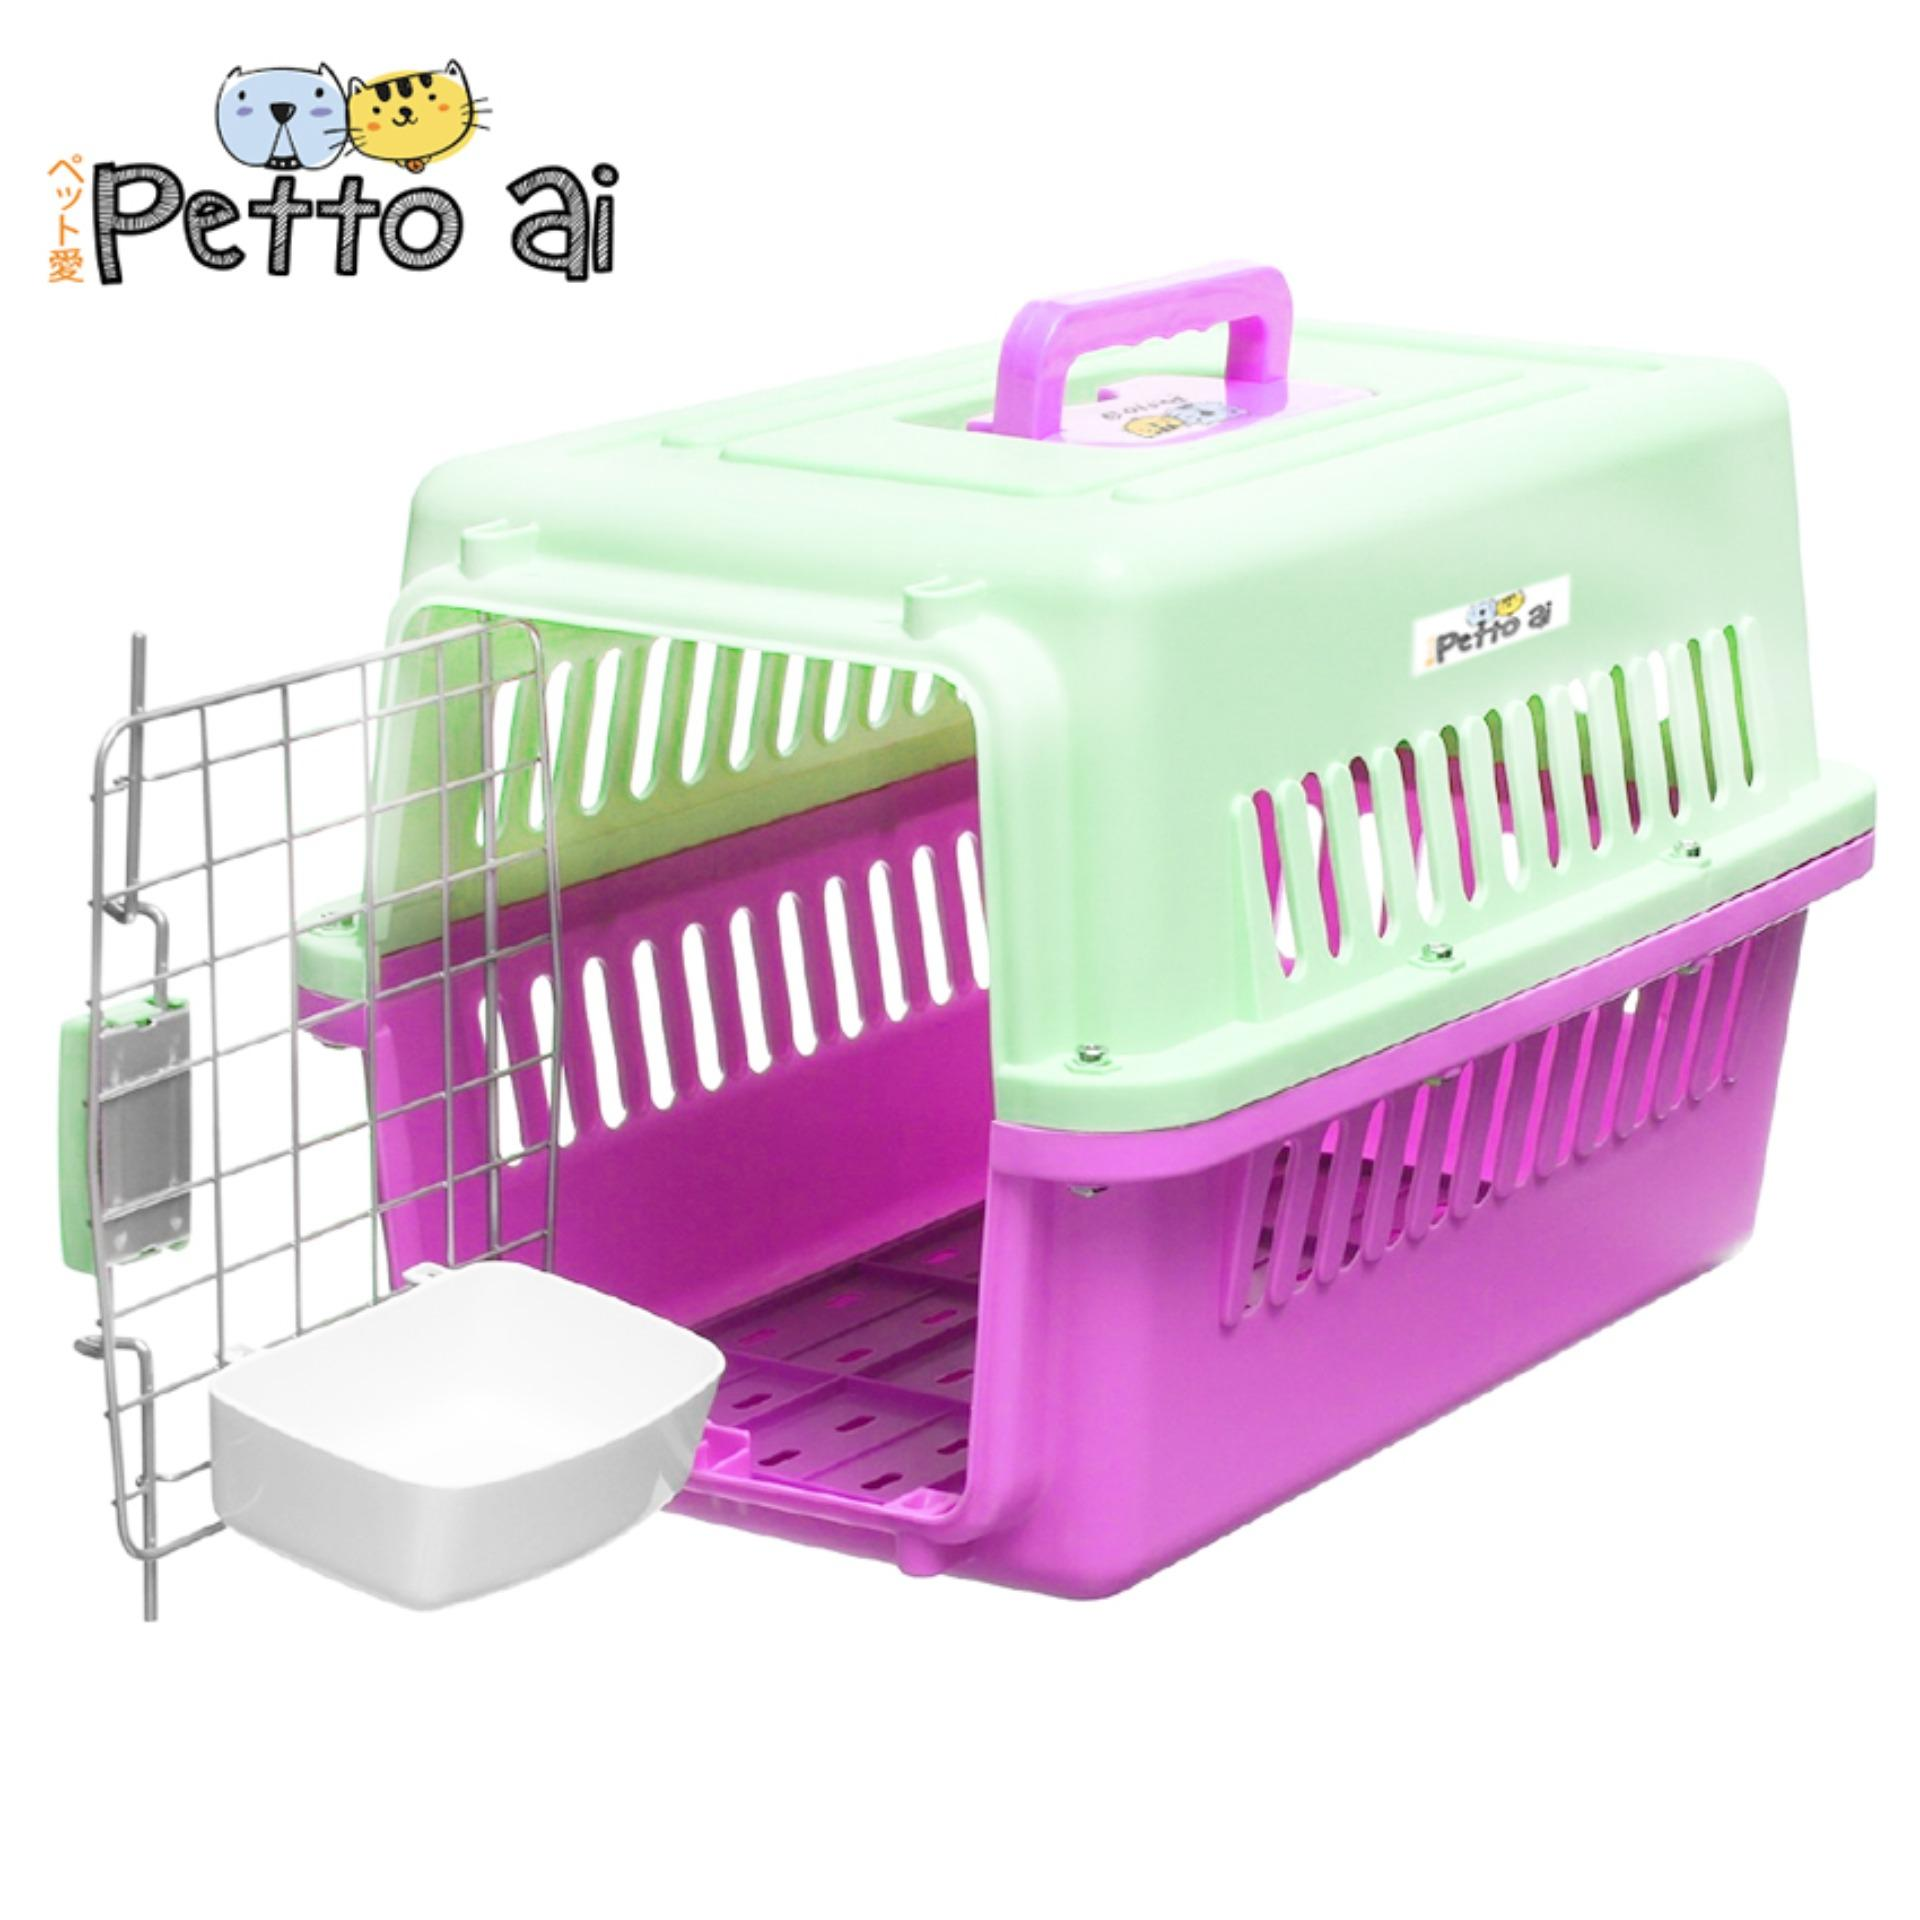 Pet Carrier 1002 Petto Ai Dog Travel Carrier Cage Airline Standard Pet Height Up To 30cm For Small Dog And Cat (white-Pink) By Dreamwest Corporation.